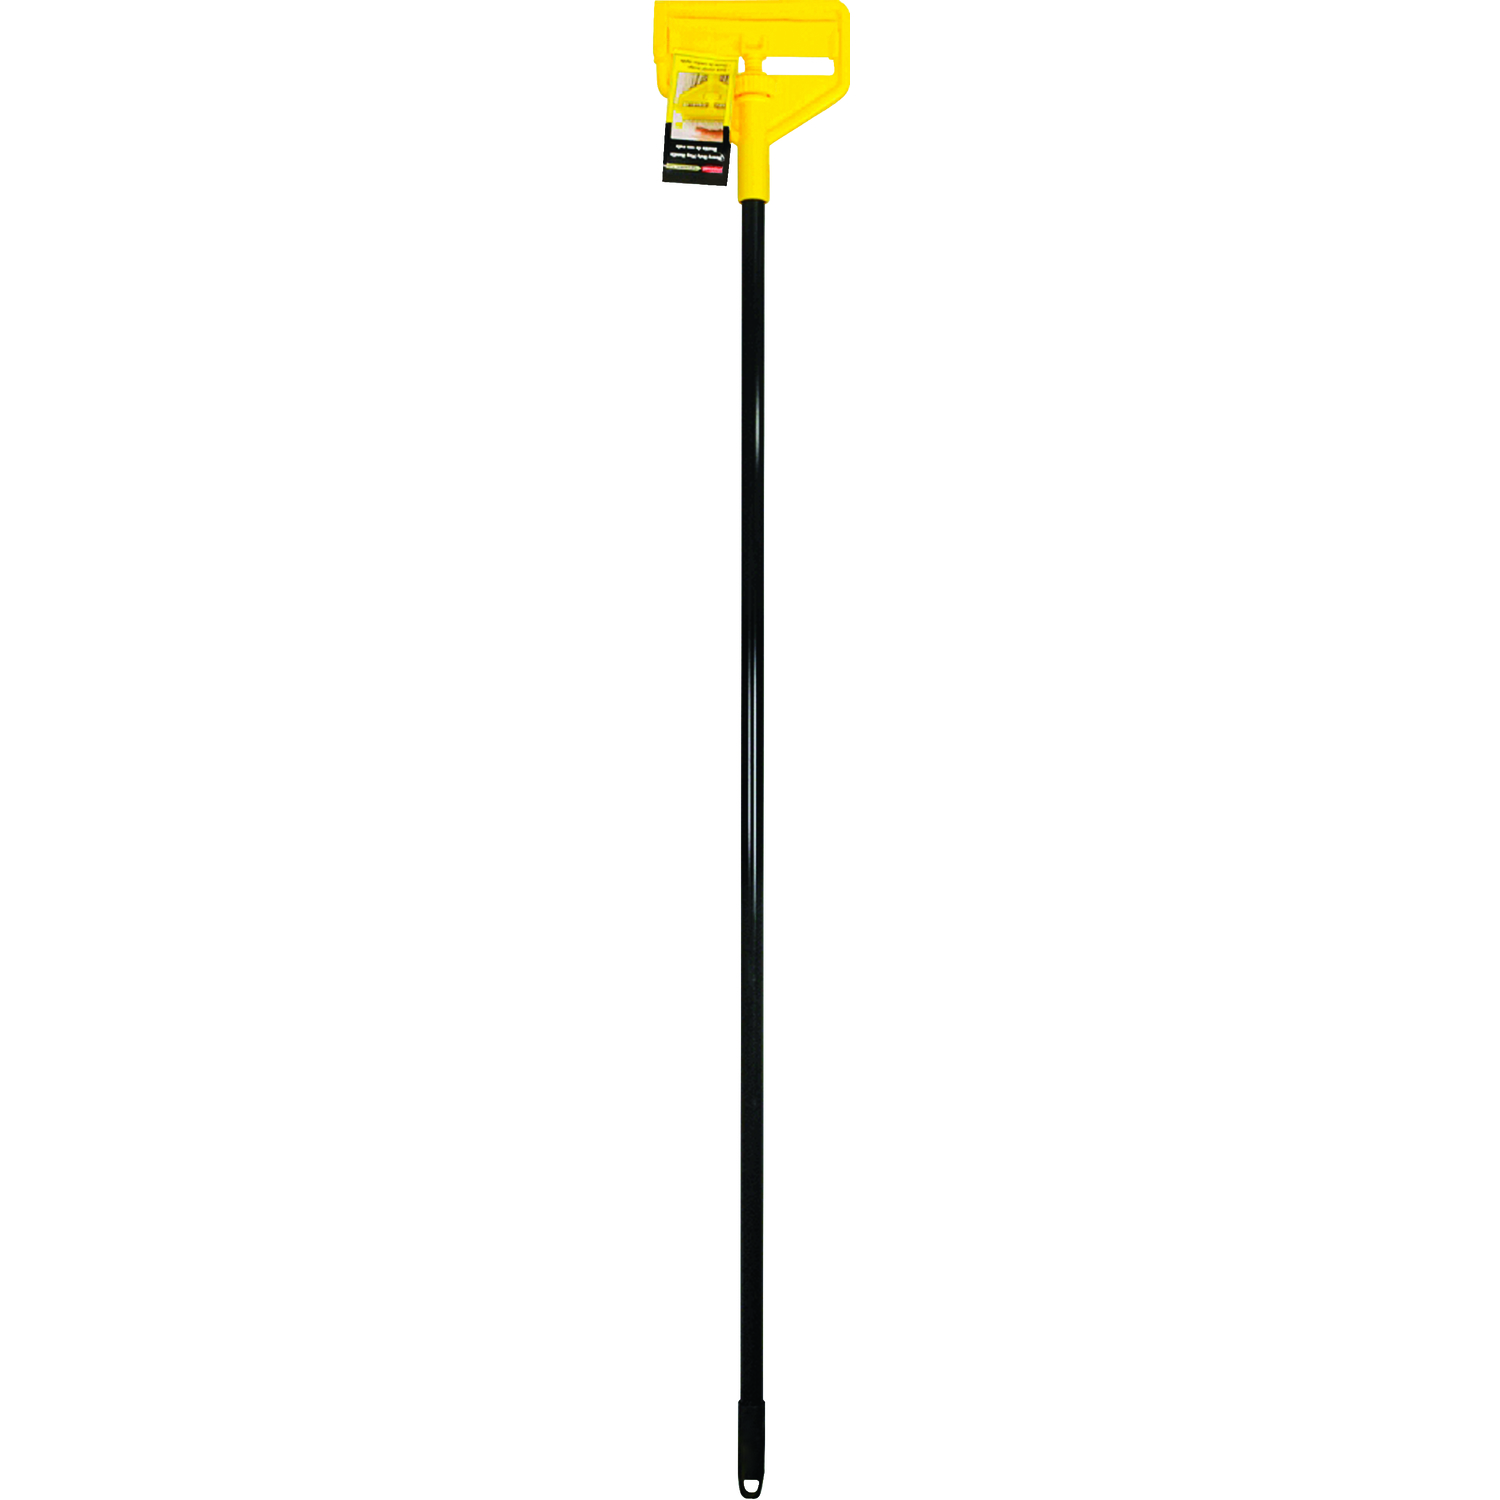 Rubbermaid Mop Handle Cotton